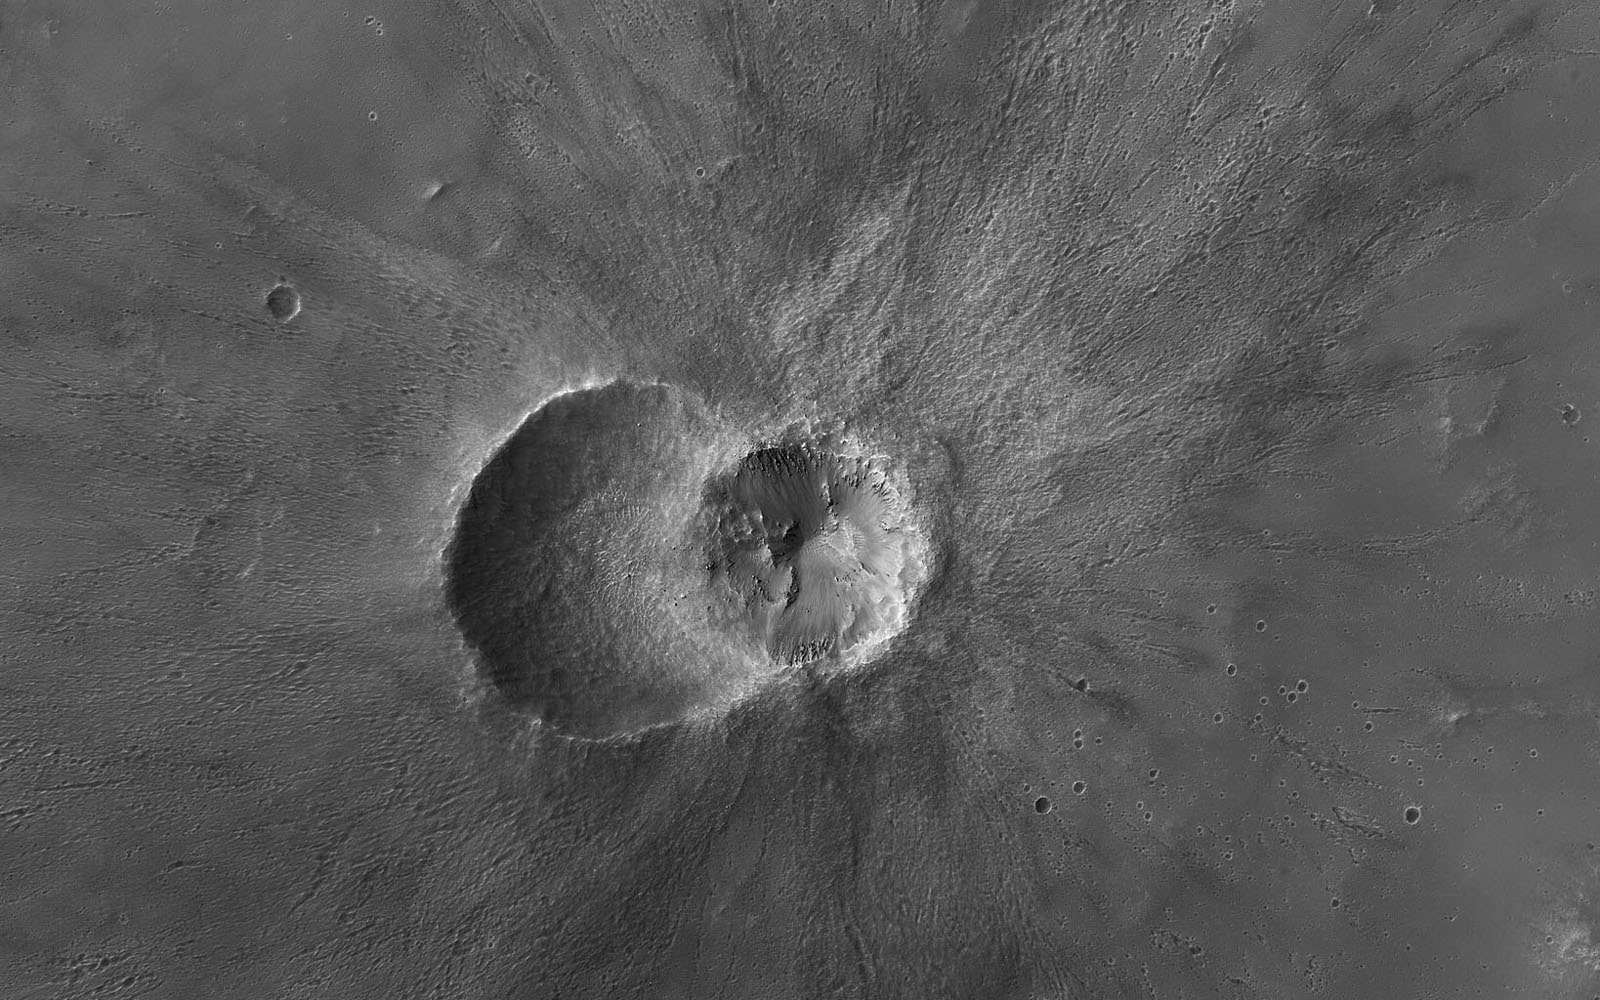 This image from NASA's Mars Reconnaissance Orbiter (MRO) shows two small impact craters located in Meridiani Planum on Mars. Small boulders on the floor and walls of the left-side crater.